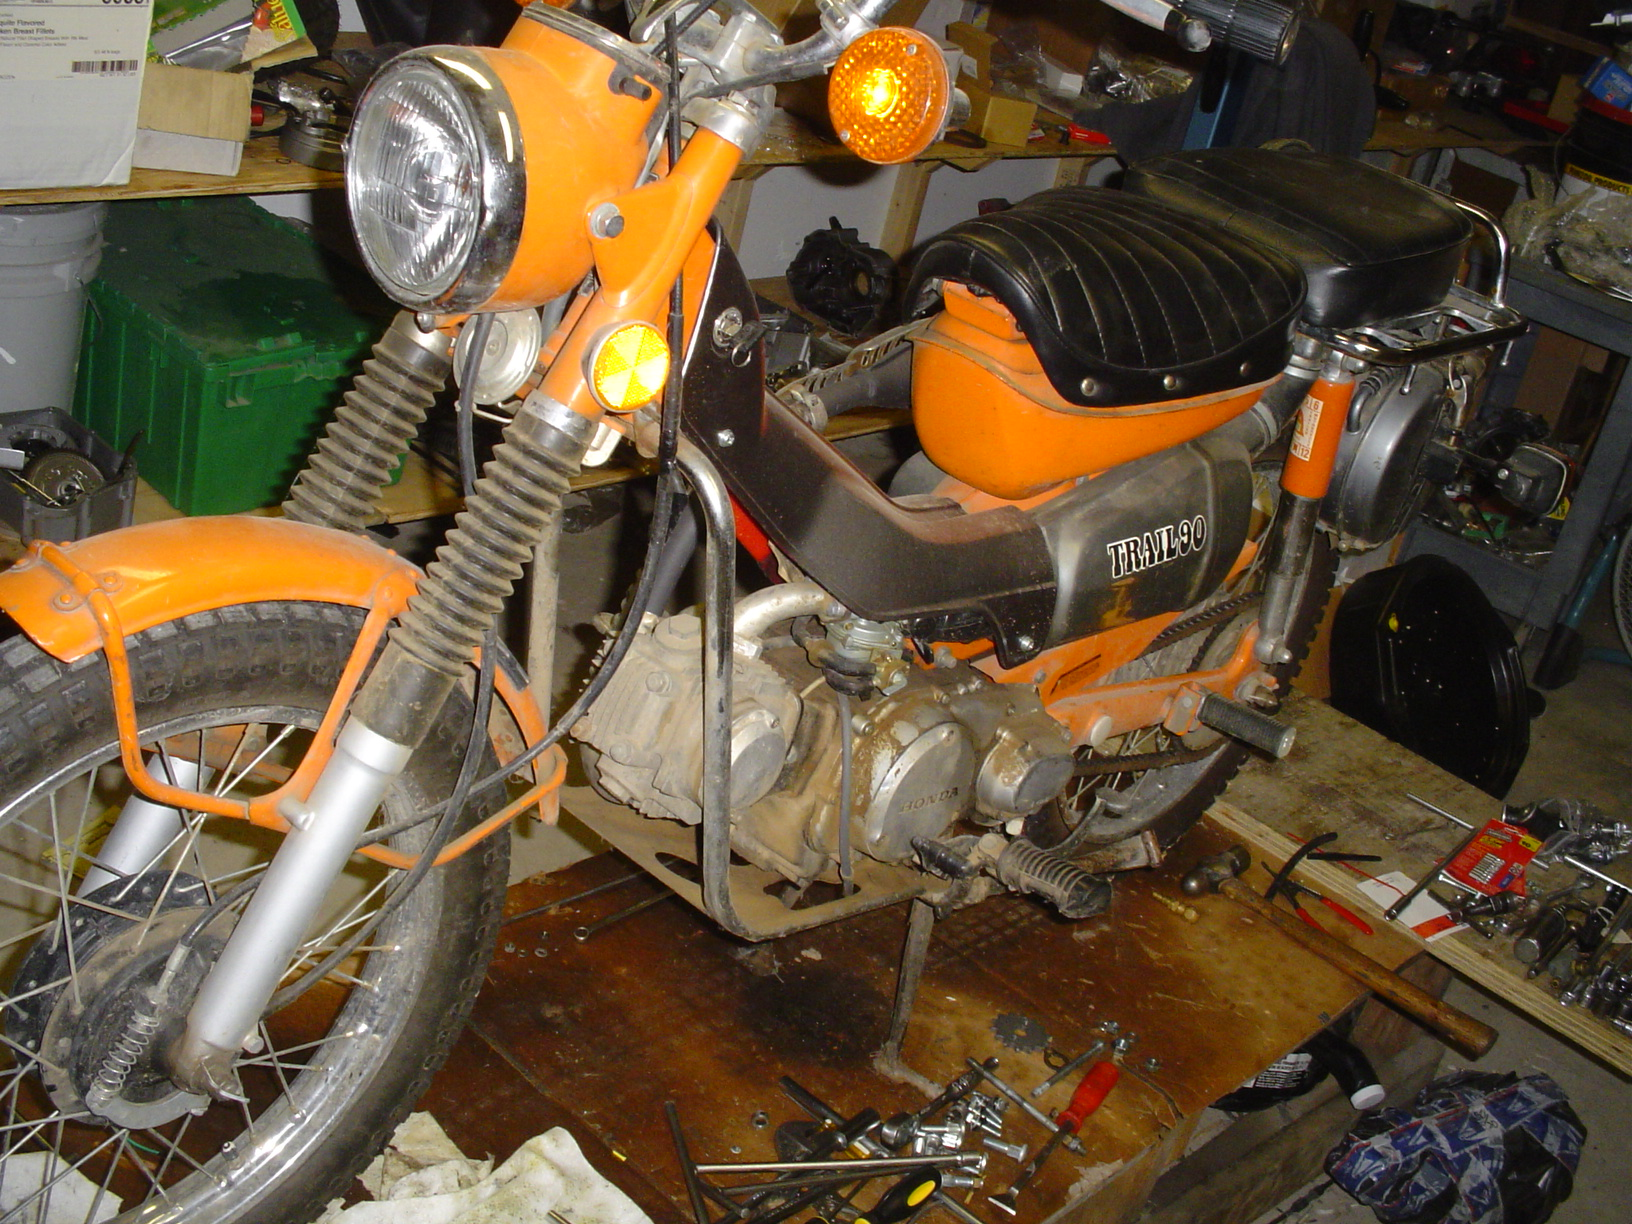 Honda Ct90 Lifan Swap Wiring Schematic Diagrams Diagram Engine Parts Needed Some Instructions 1970